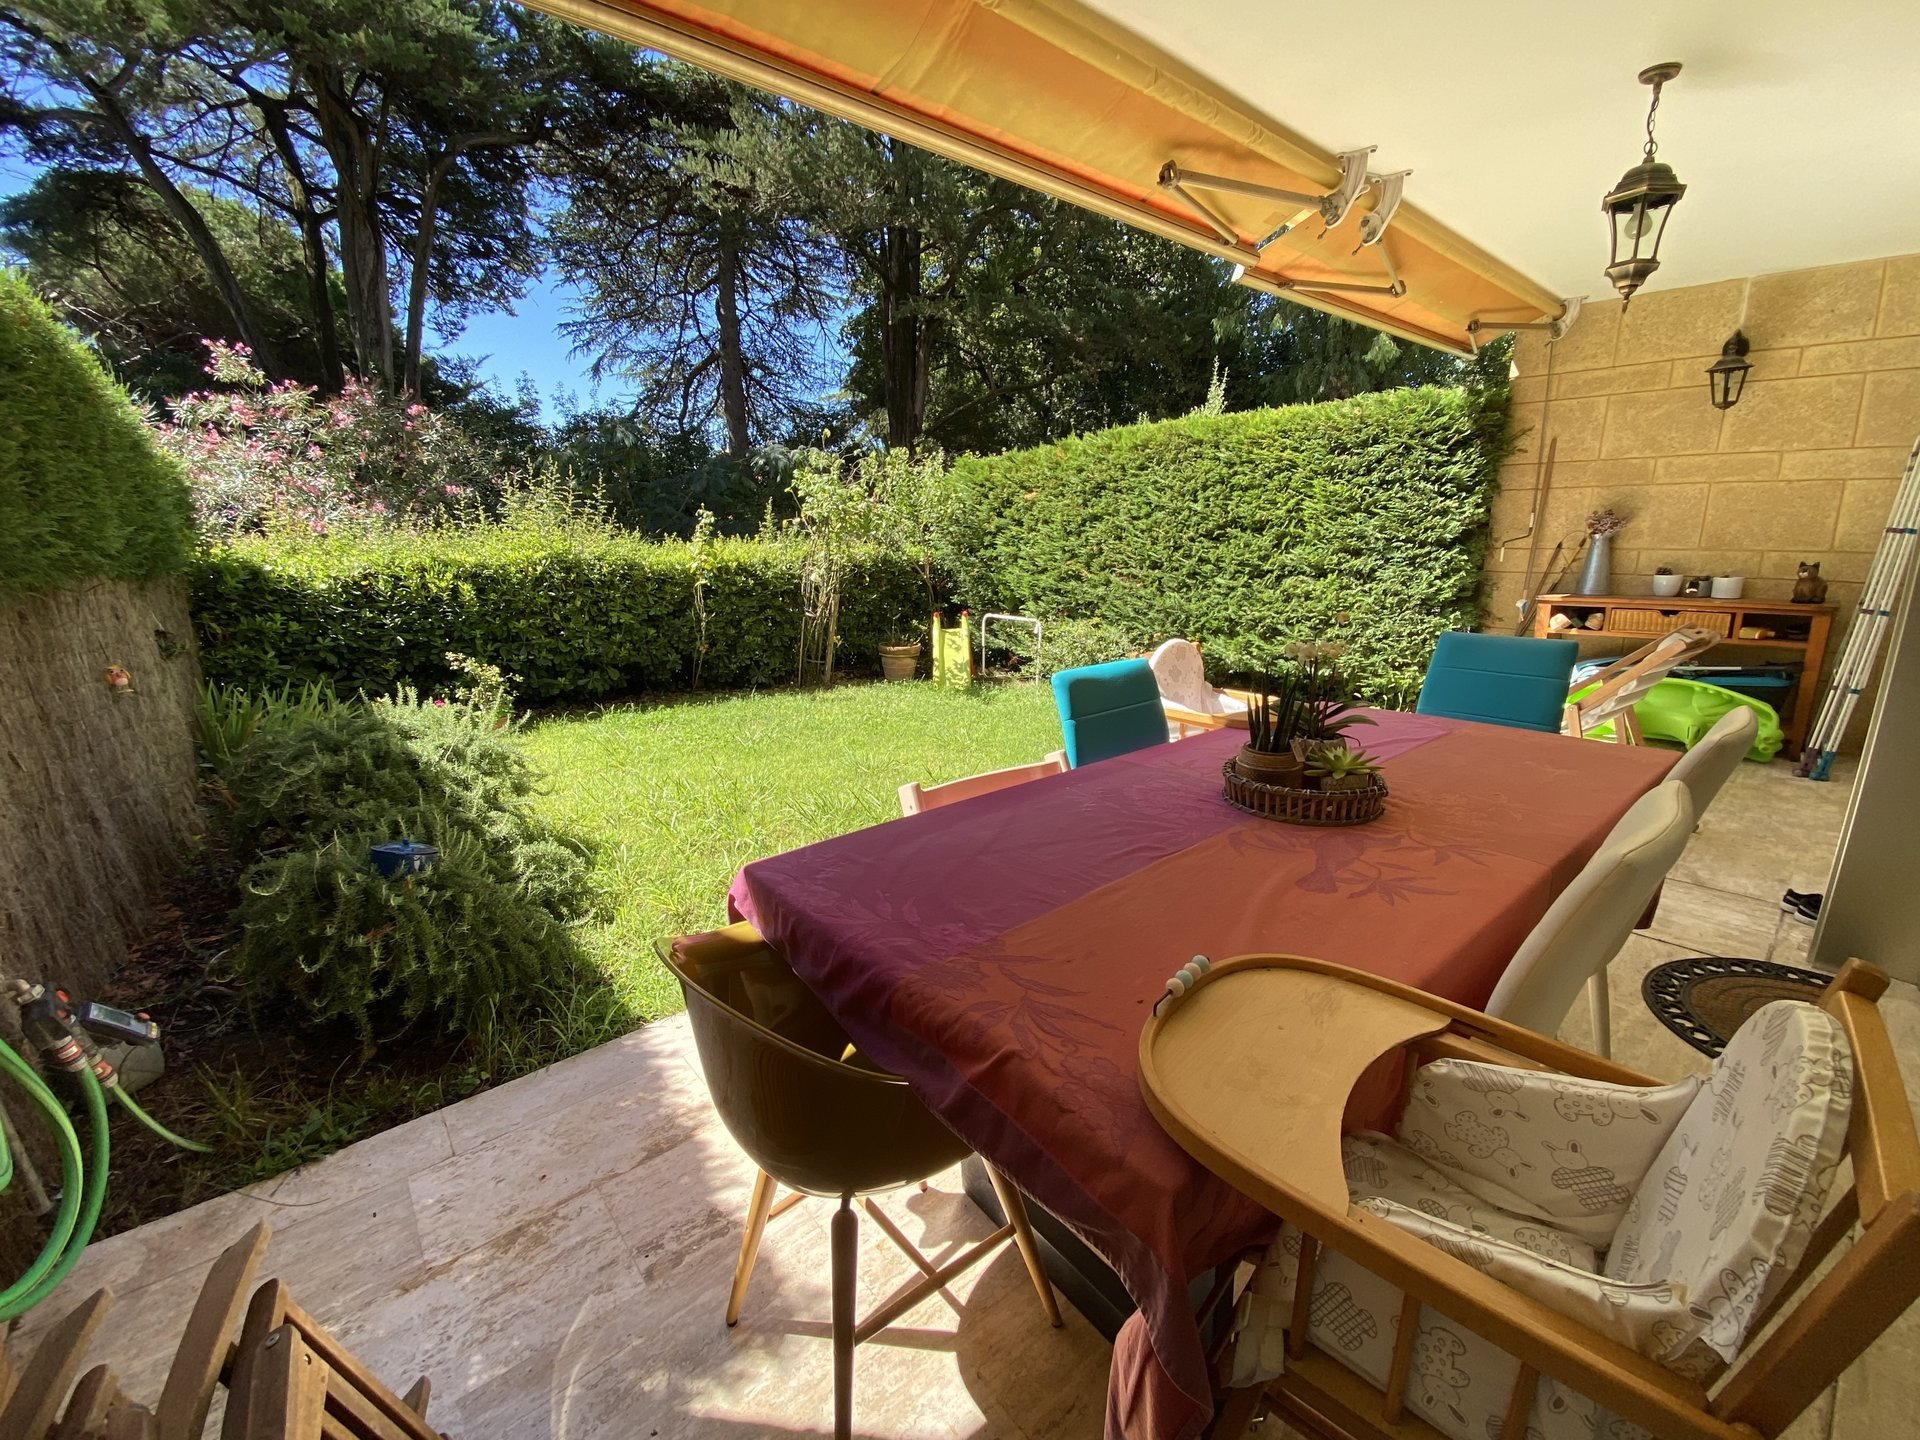 CANNES SALE 3 ROOMS ON GARDEN LEVEL IN A QUIET AREA